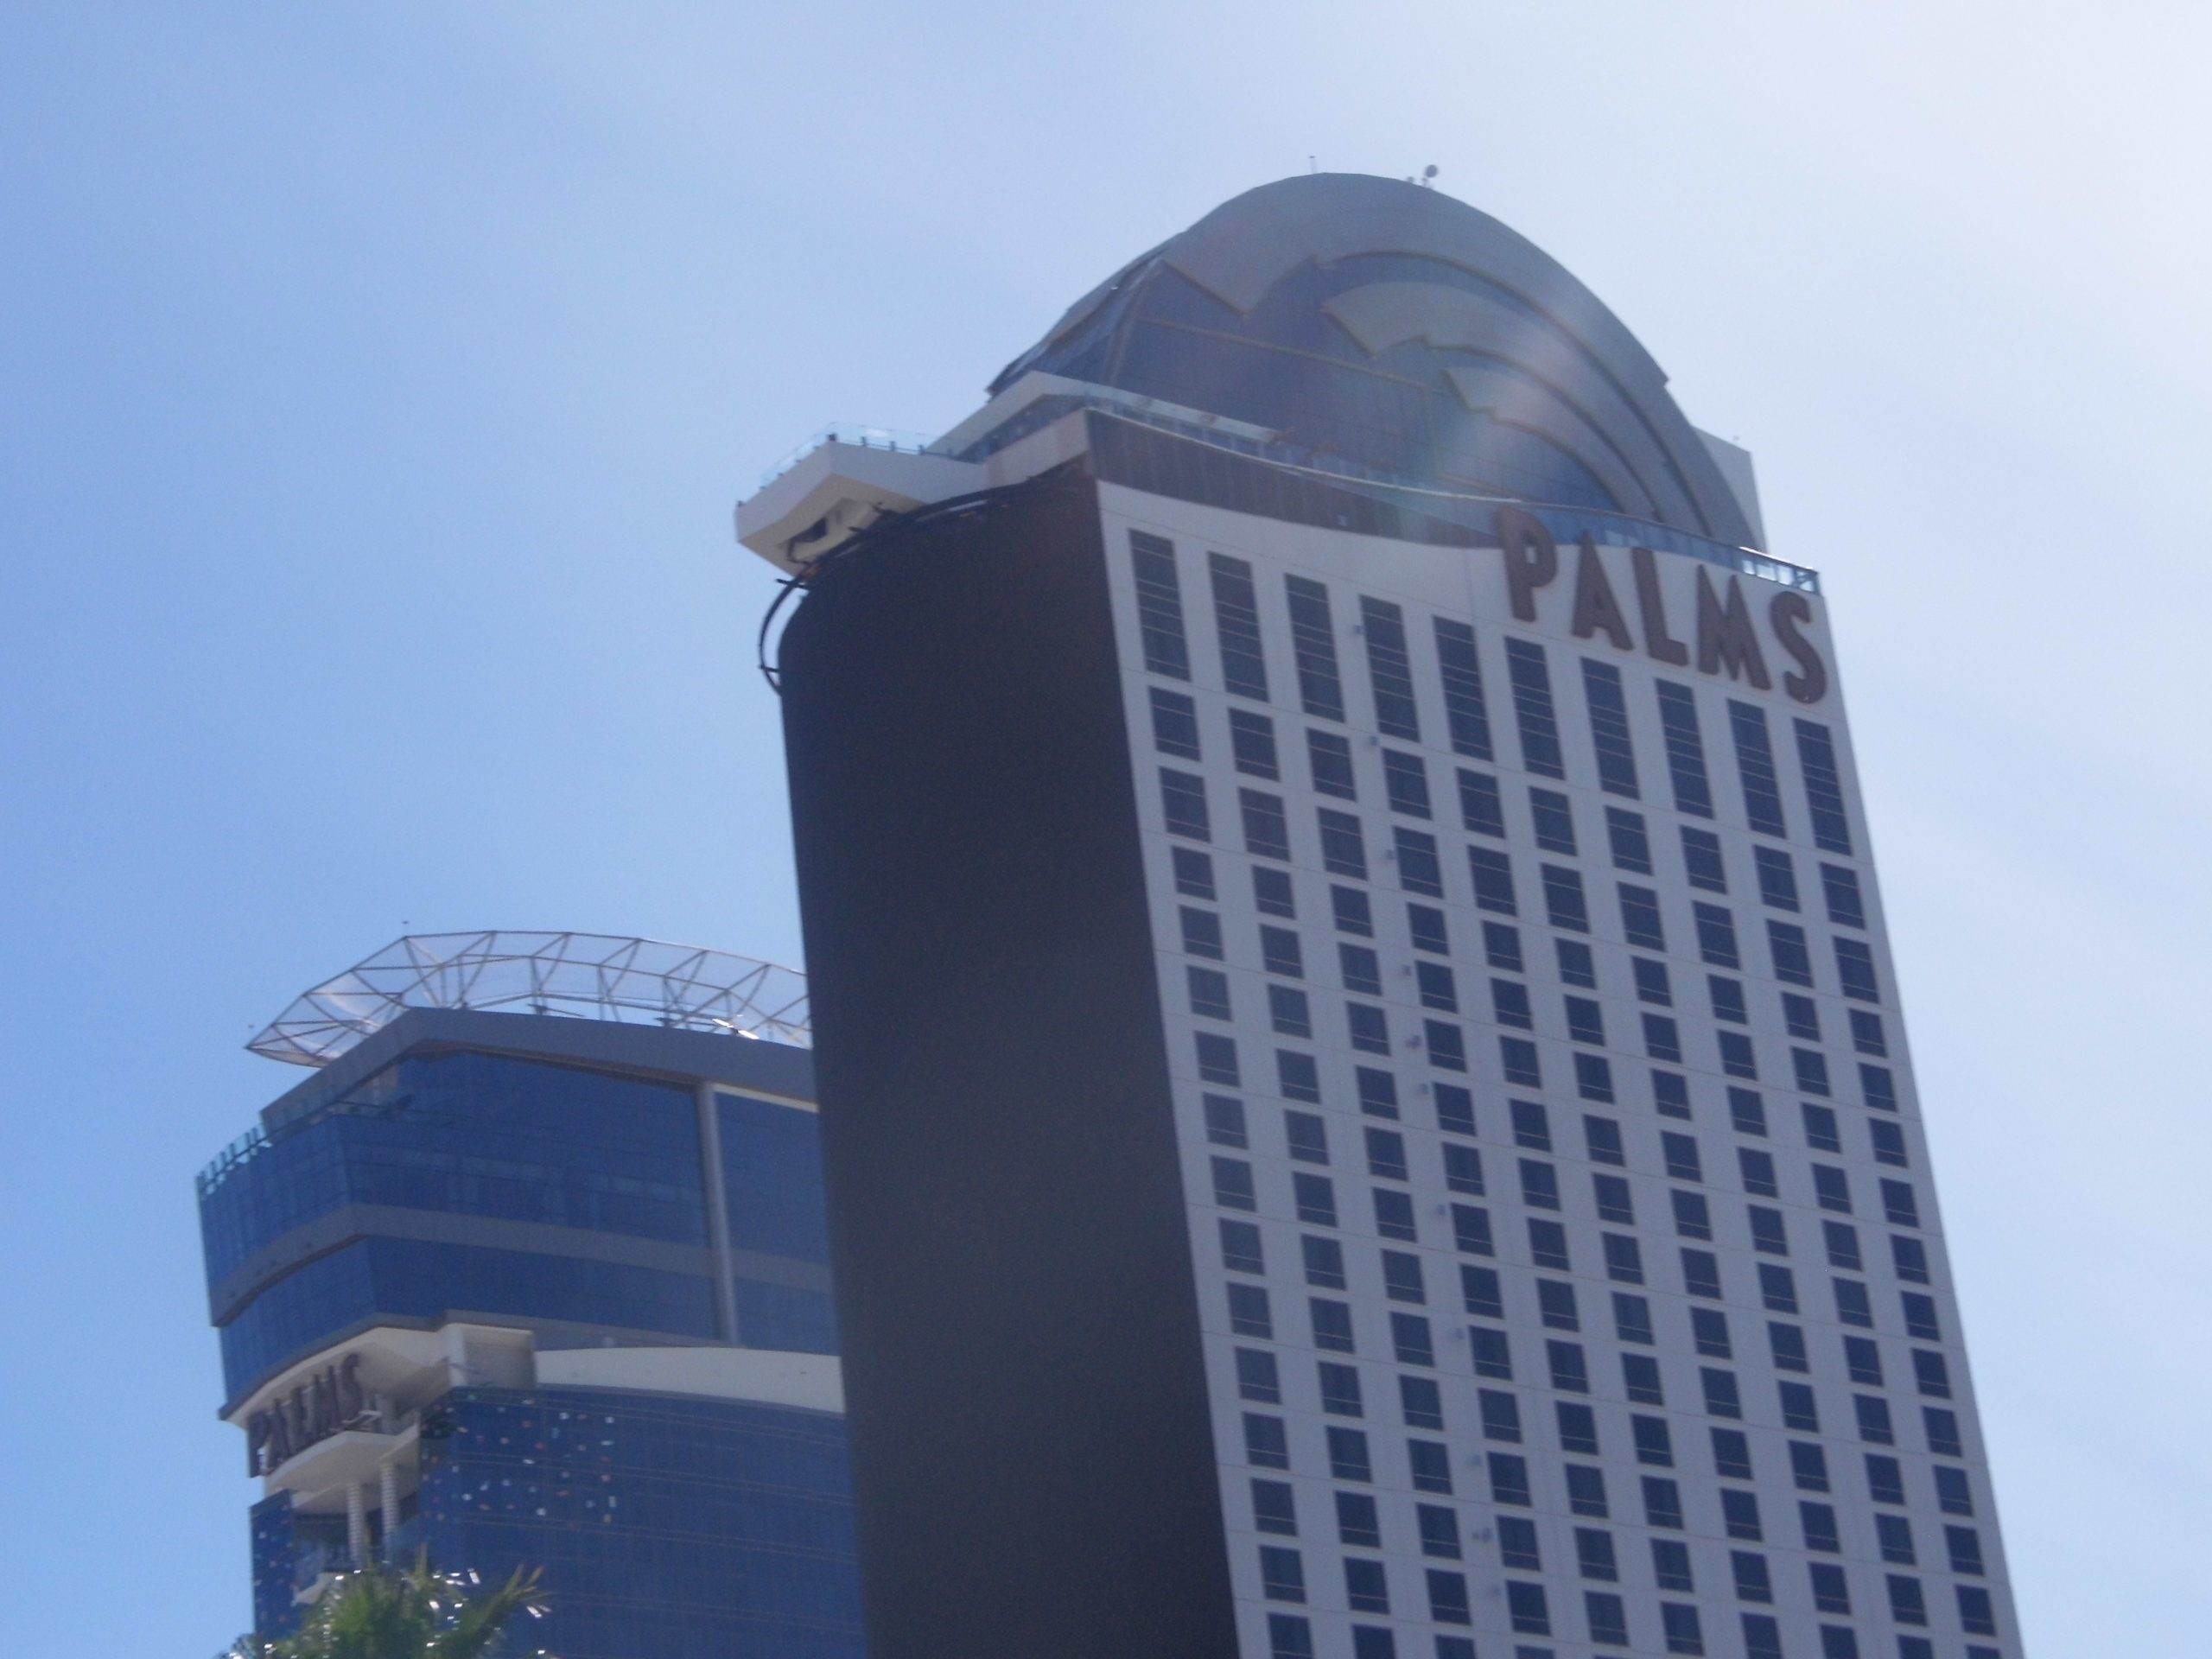 Palms Hotel and Casino 2019, 2019 Palms Hotel and Casino